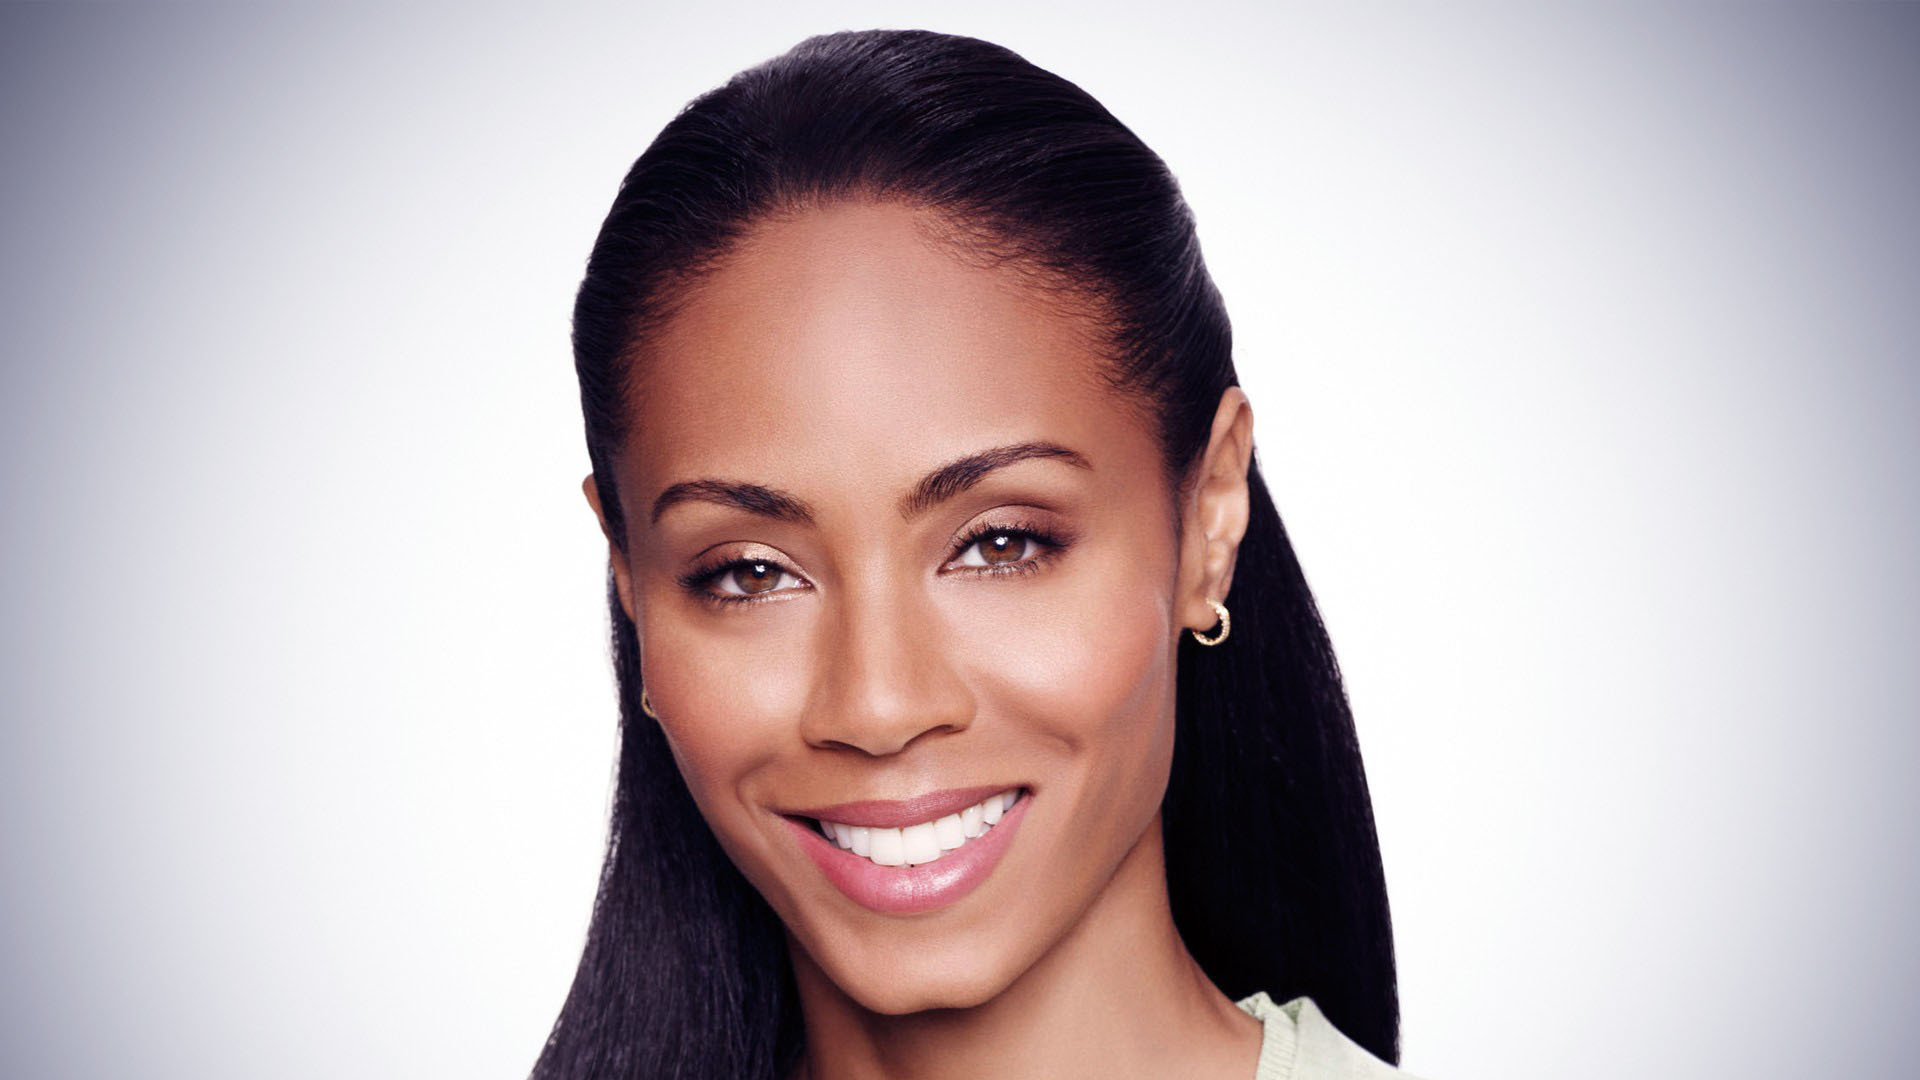 Jada Pinkett Smith Hd Wallpaper